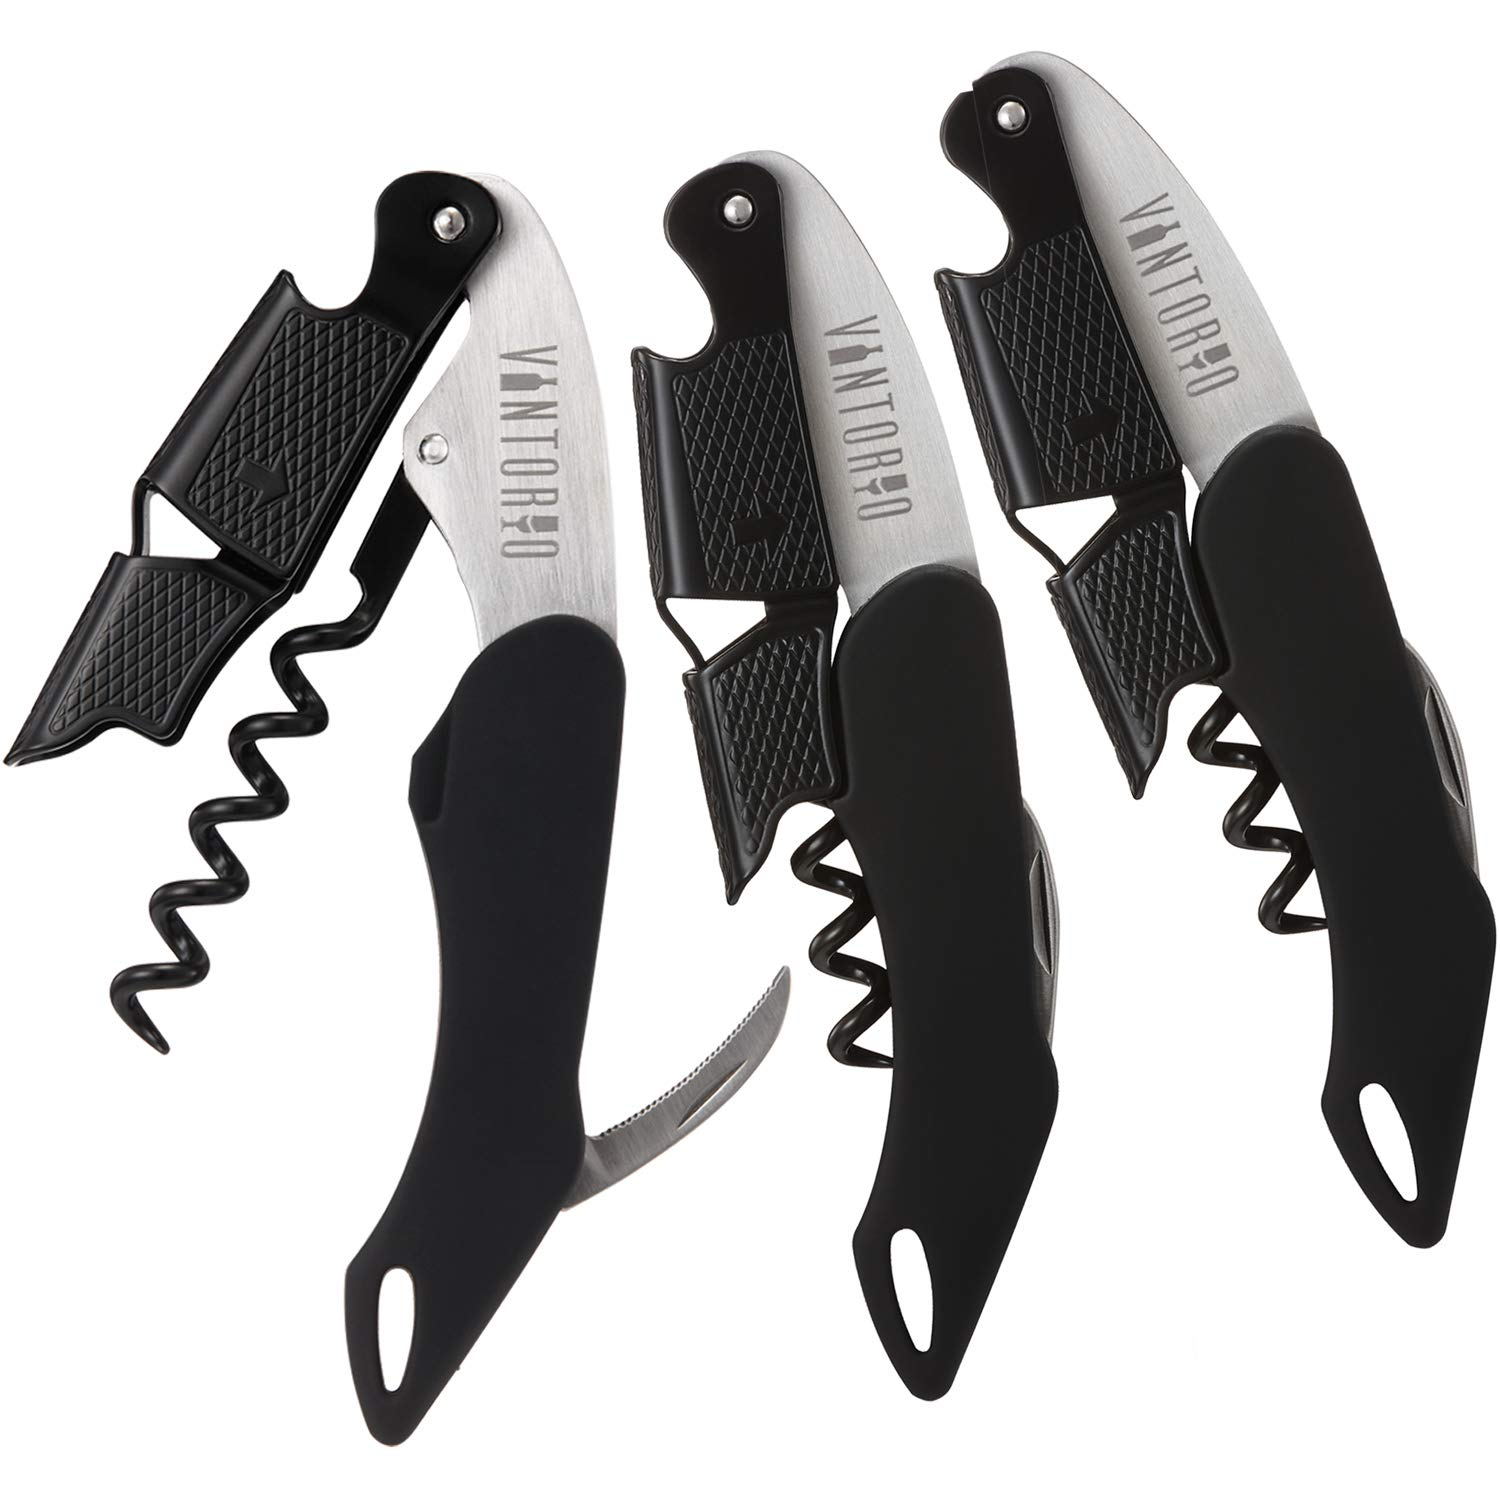 Vintorio Professional Waiters Corkscrew - Wine Key with Ergonomic Rubber Grip, Beer Bottle Opener and Foil Cutter (3 Pack) by Vintorio